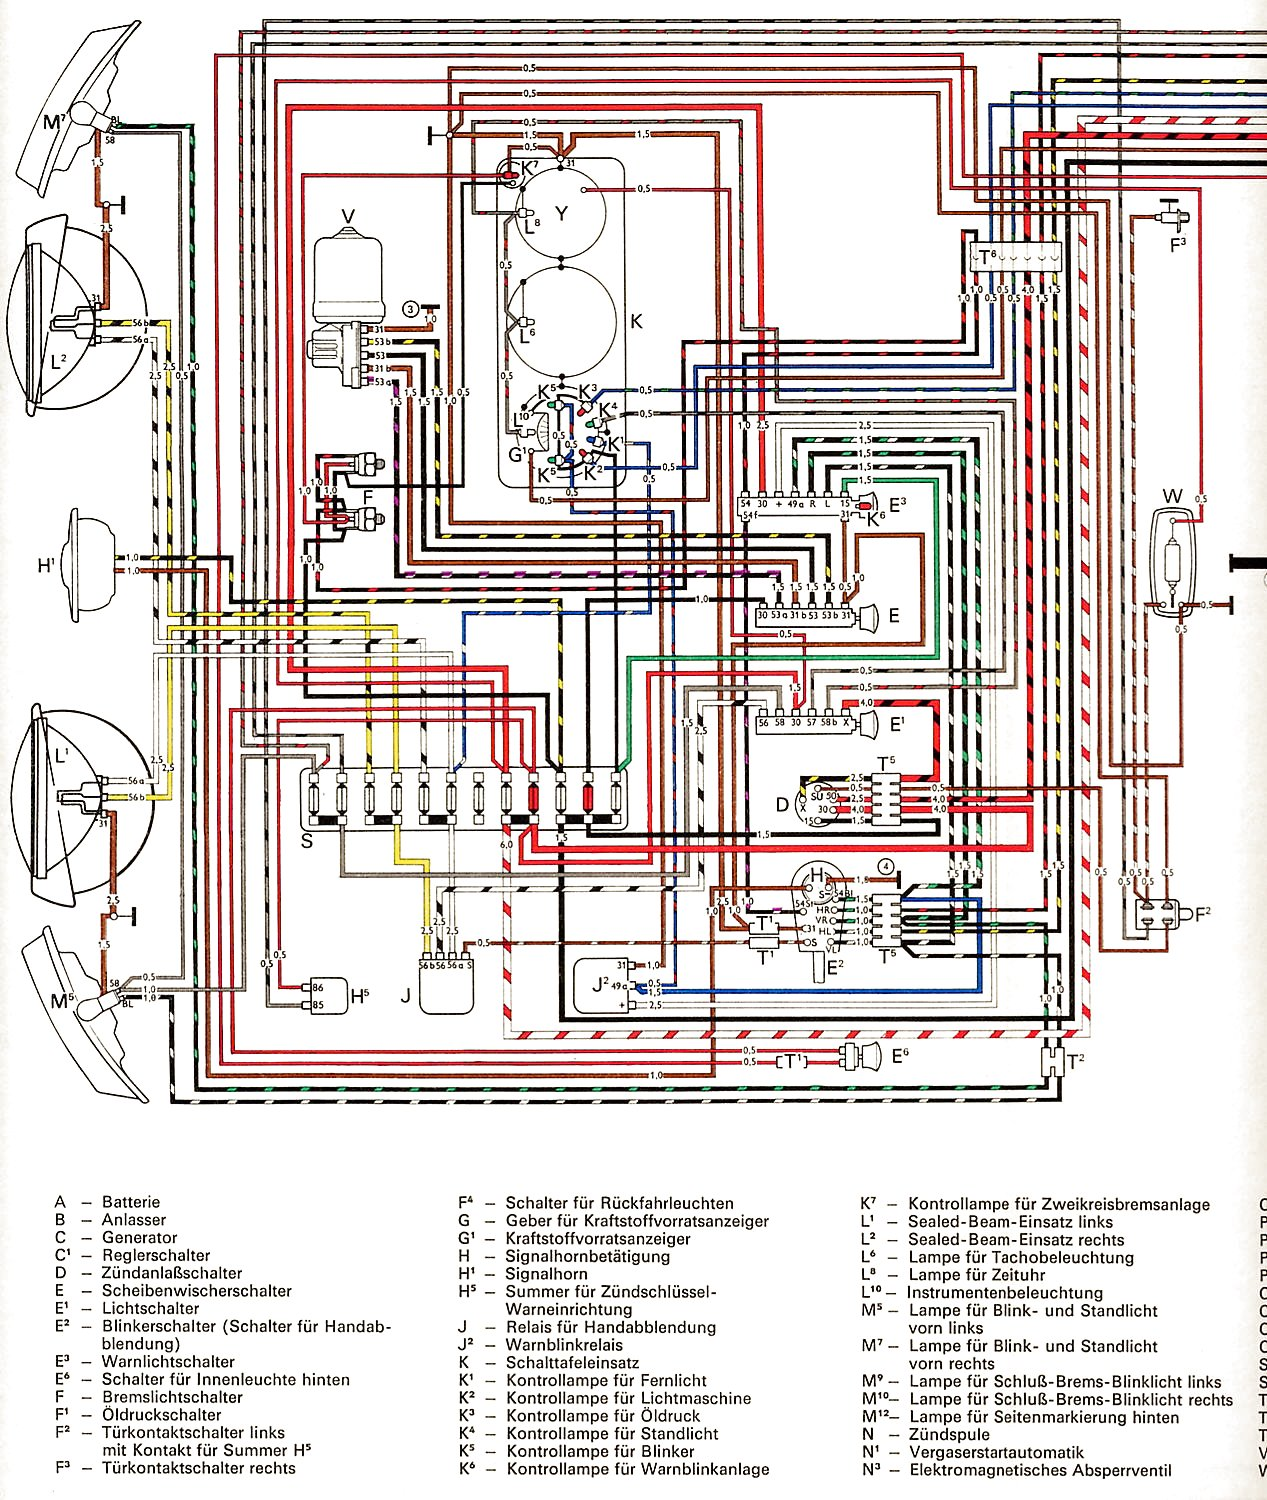 vintagebus com vw bus and other wiring diagrams rh vintagebus com 66 vw beetle wiring diagram 68 vw beetle wiring schematic